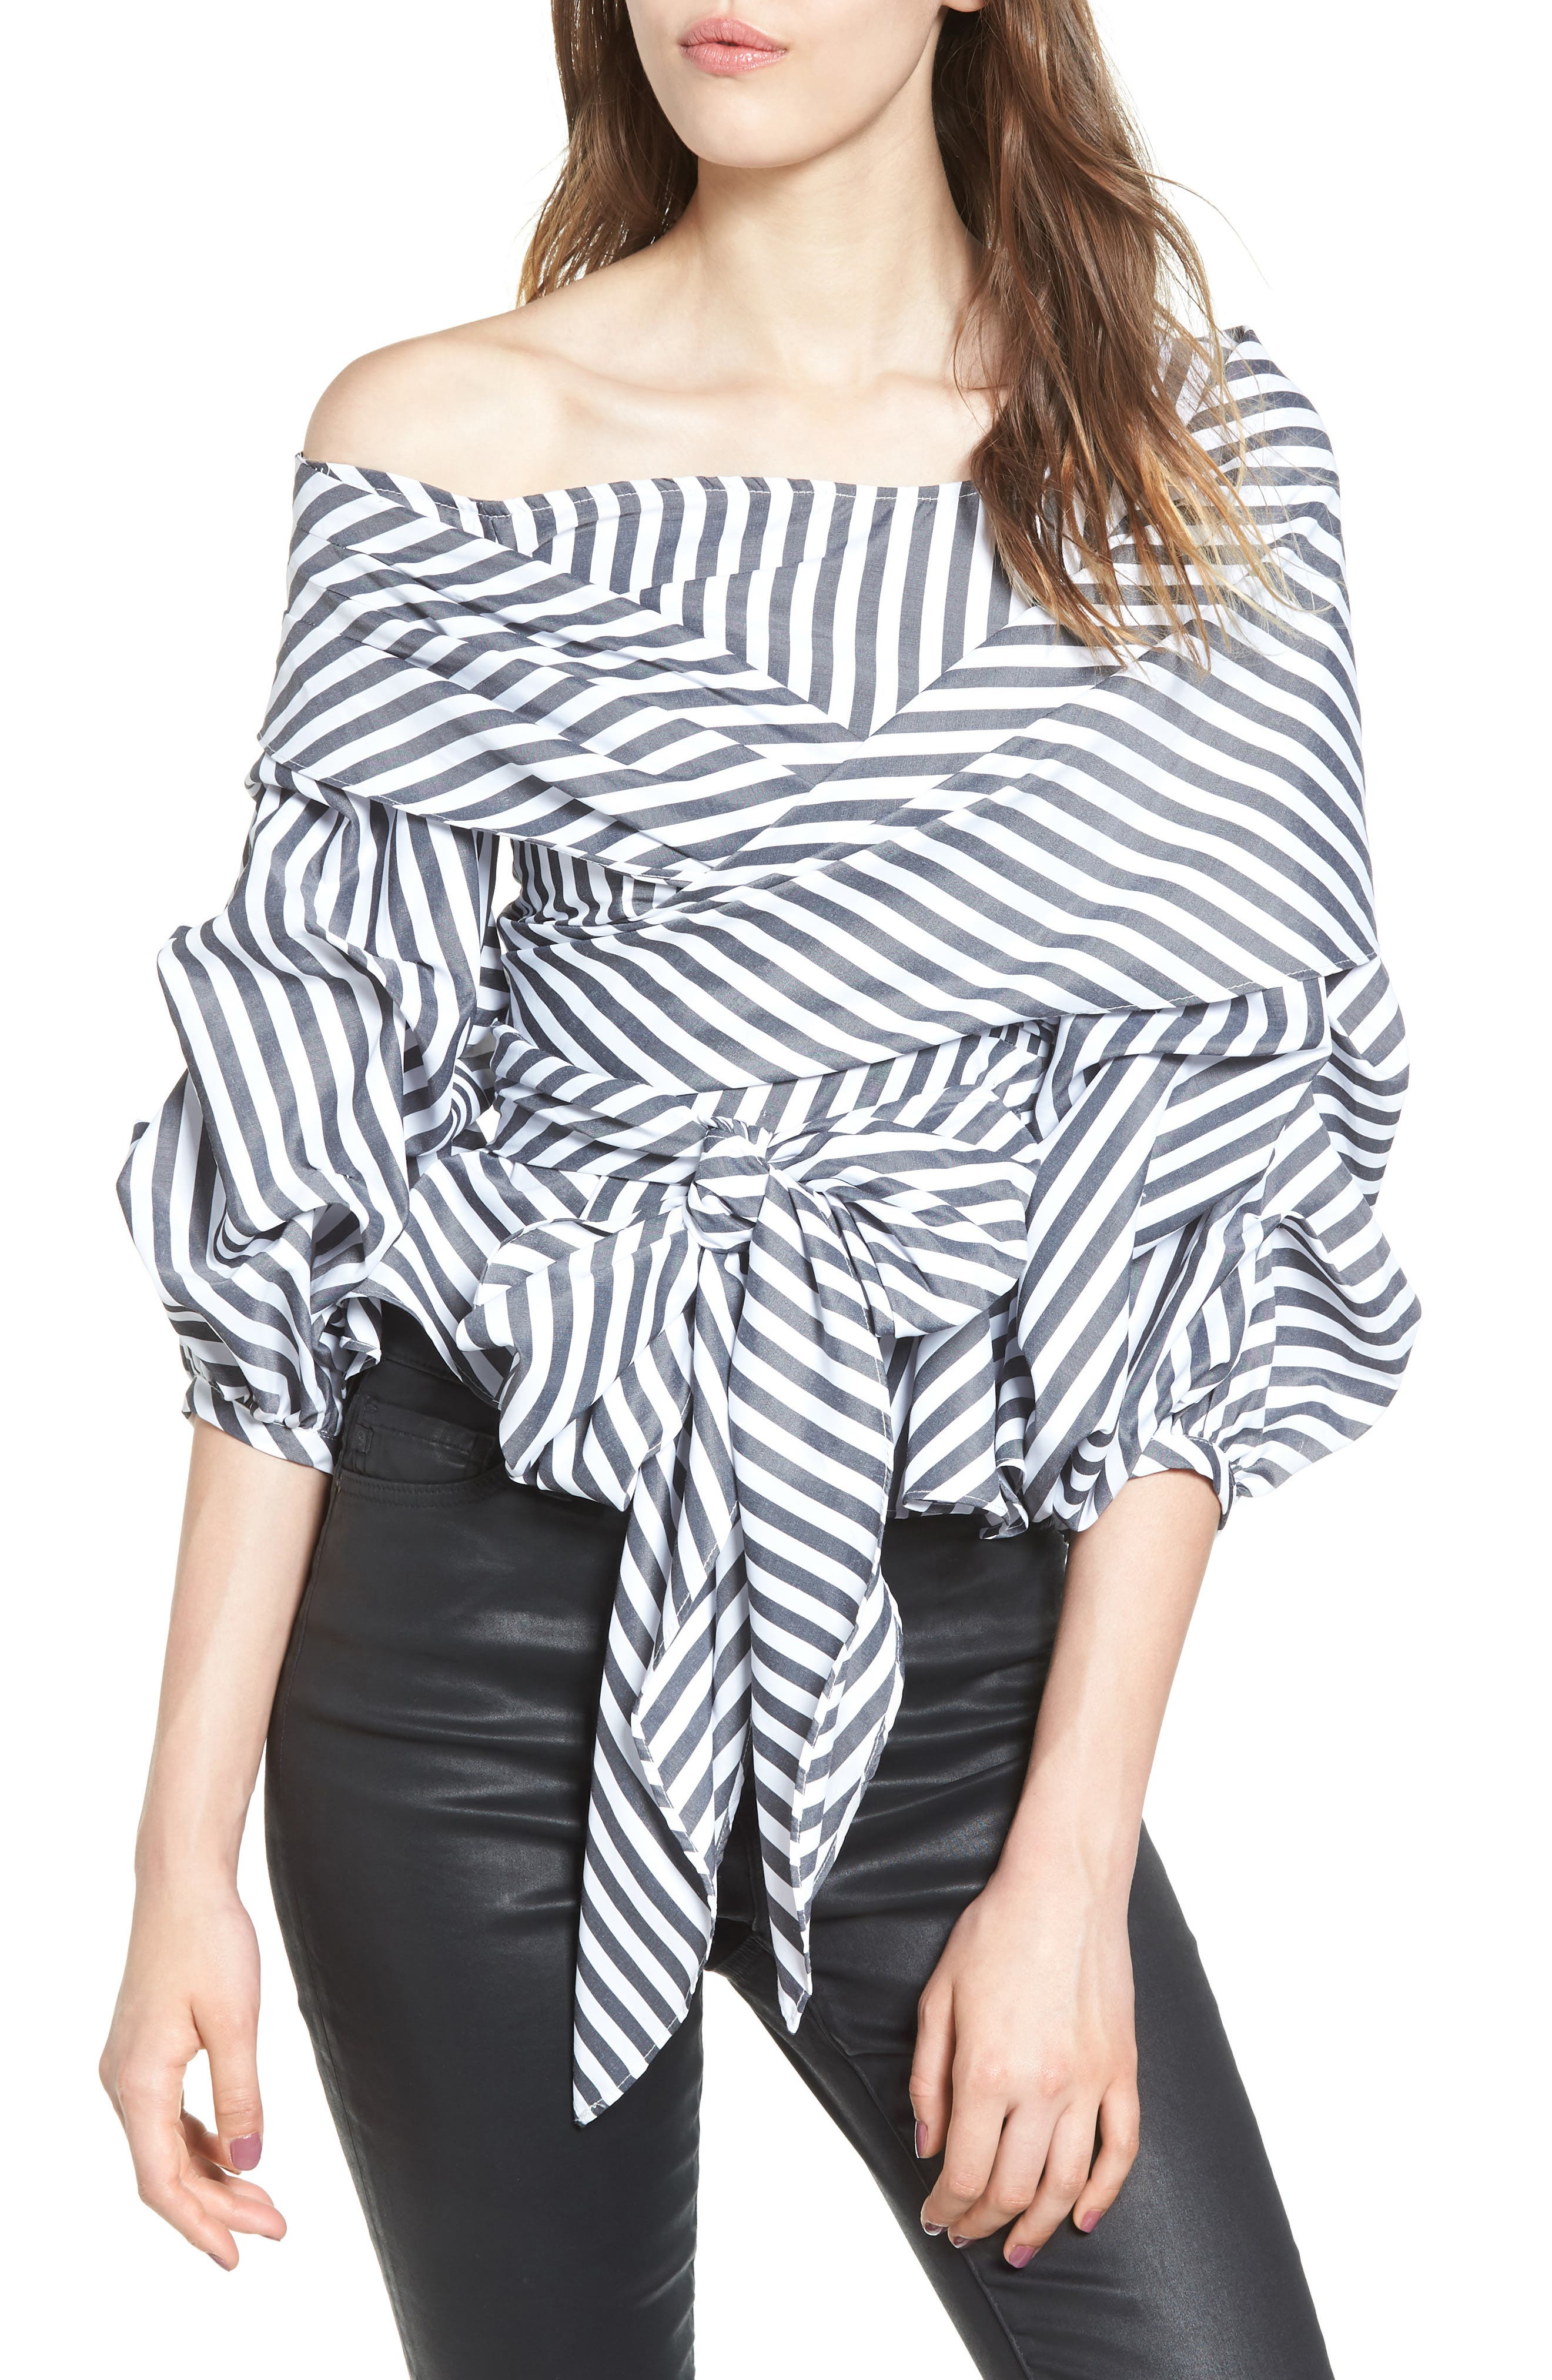 The Lovers Lane Top,                             Main thumbnail 1, color,                             Striped Charcoal